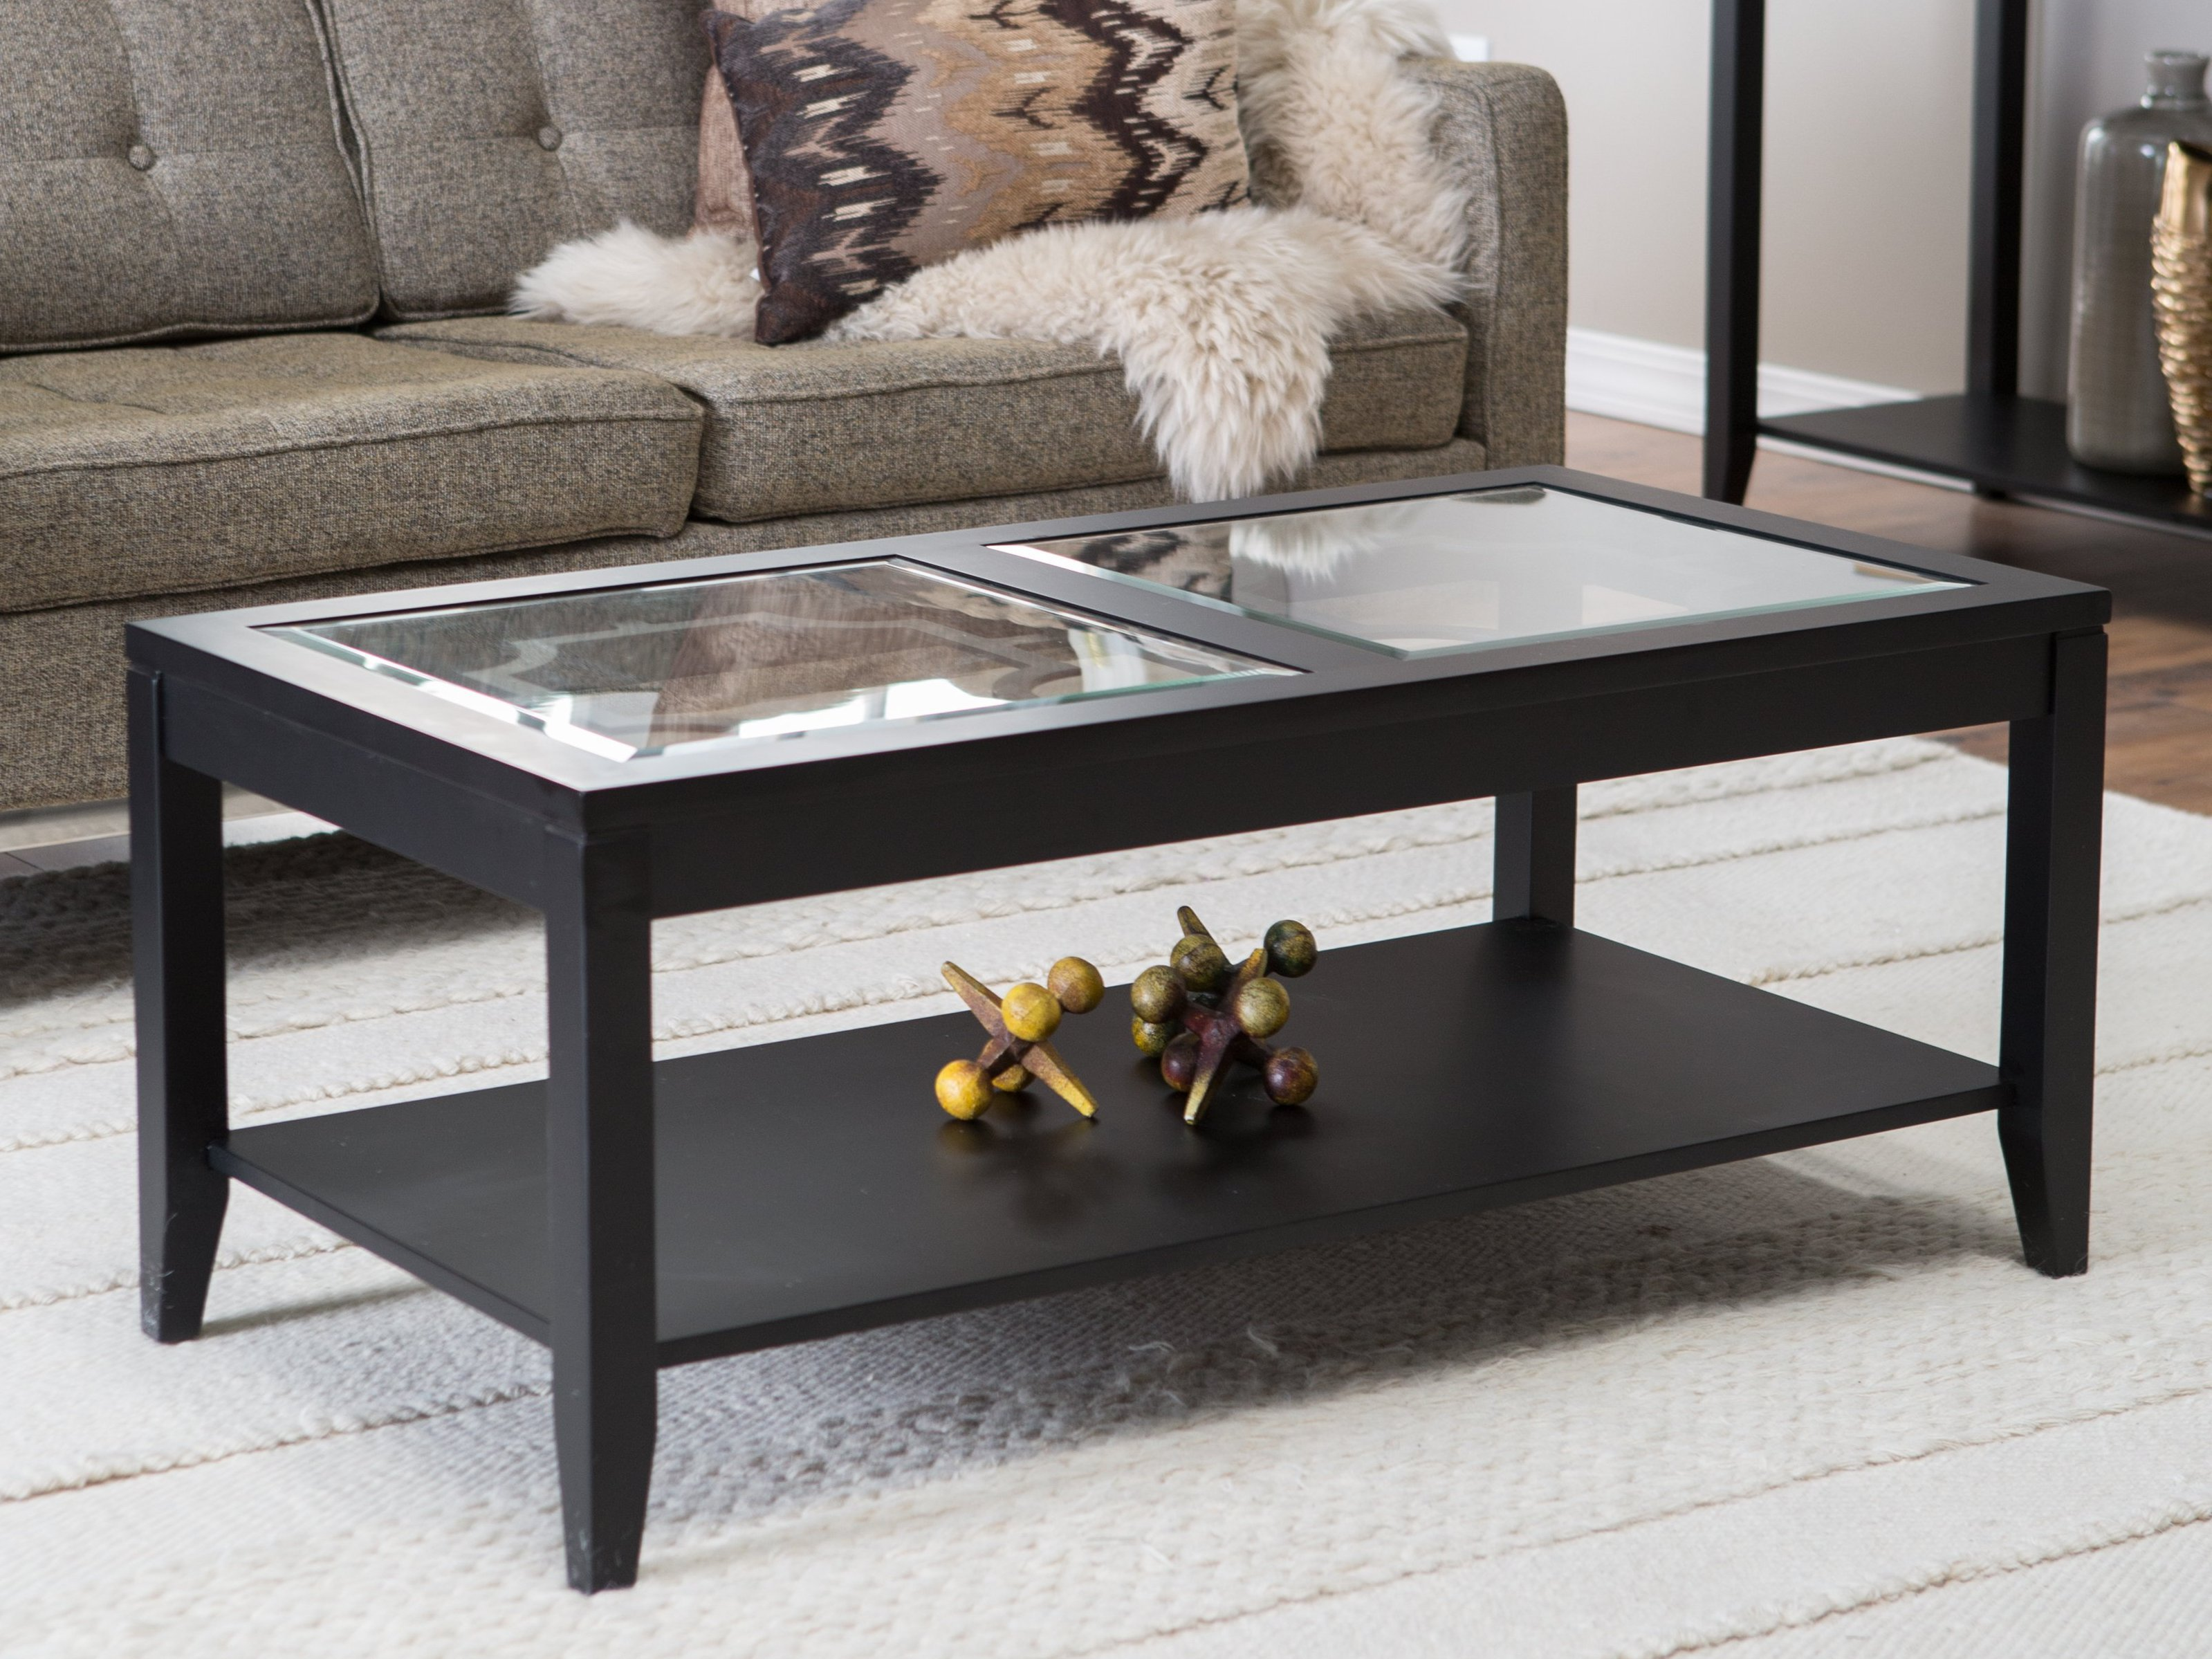 Rectangular coffee table design images photos pictures for Rectangular coffee table with glass top